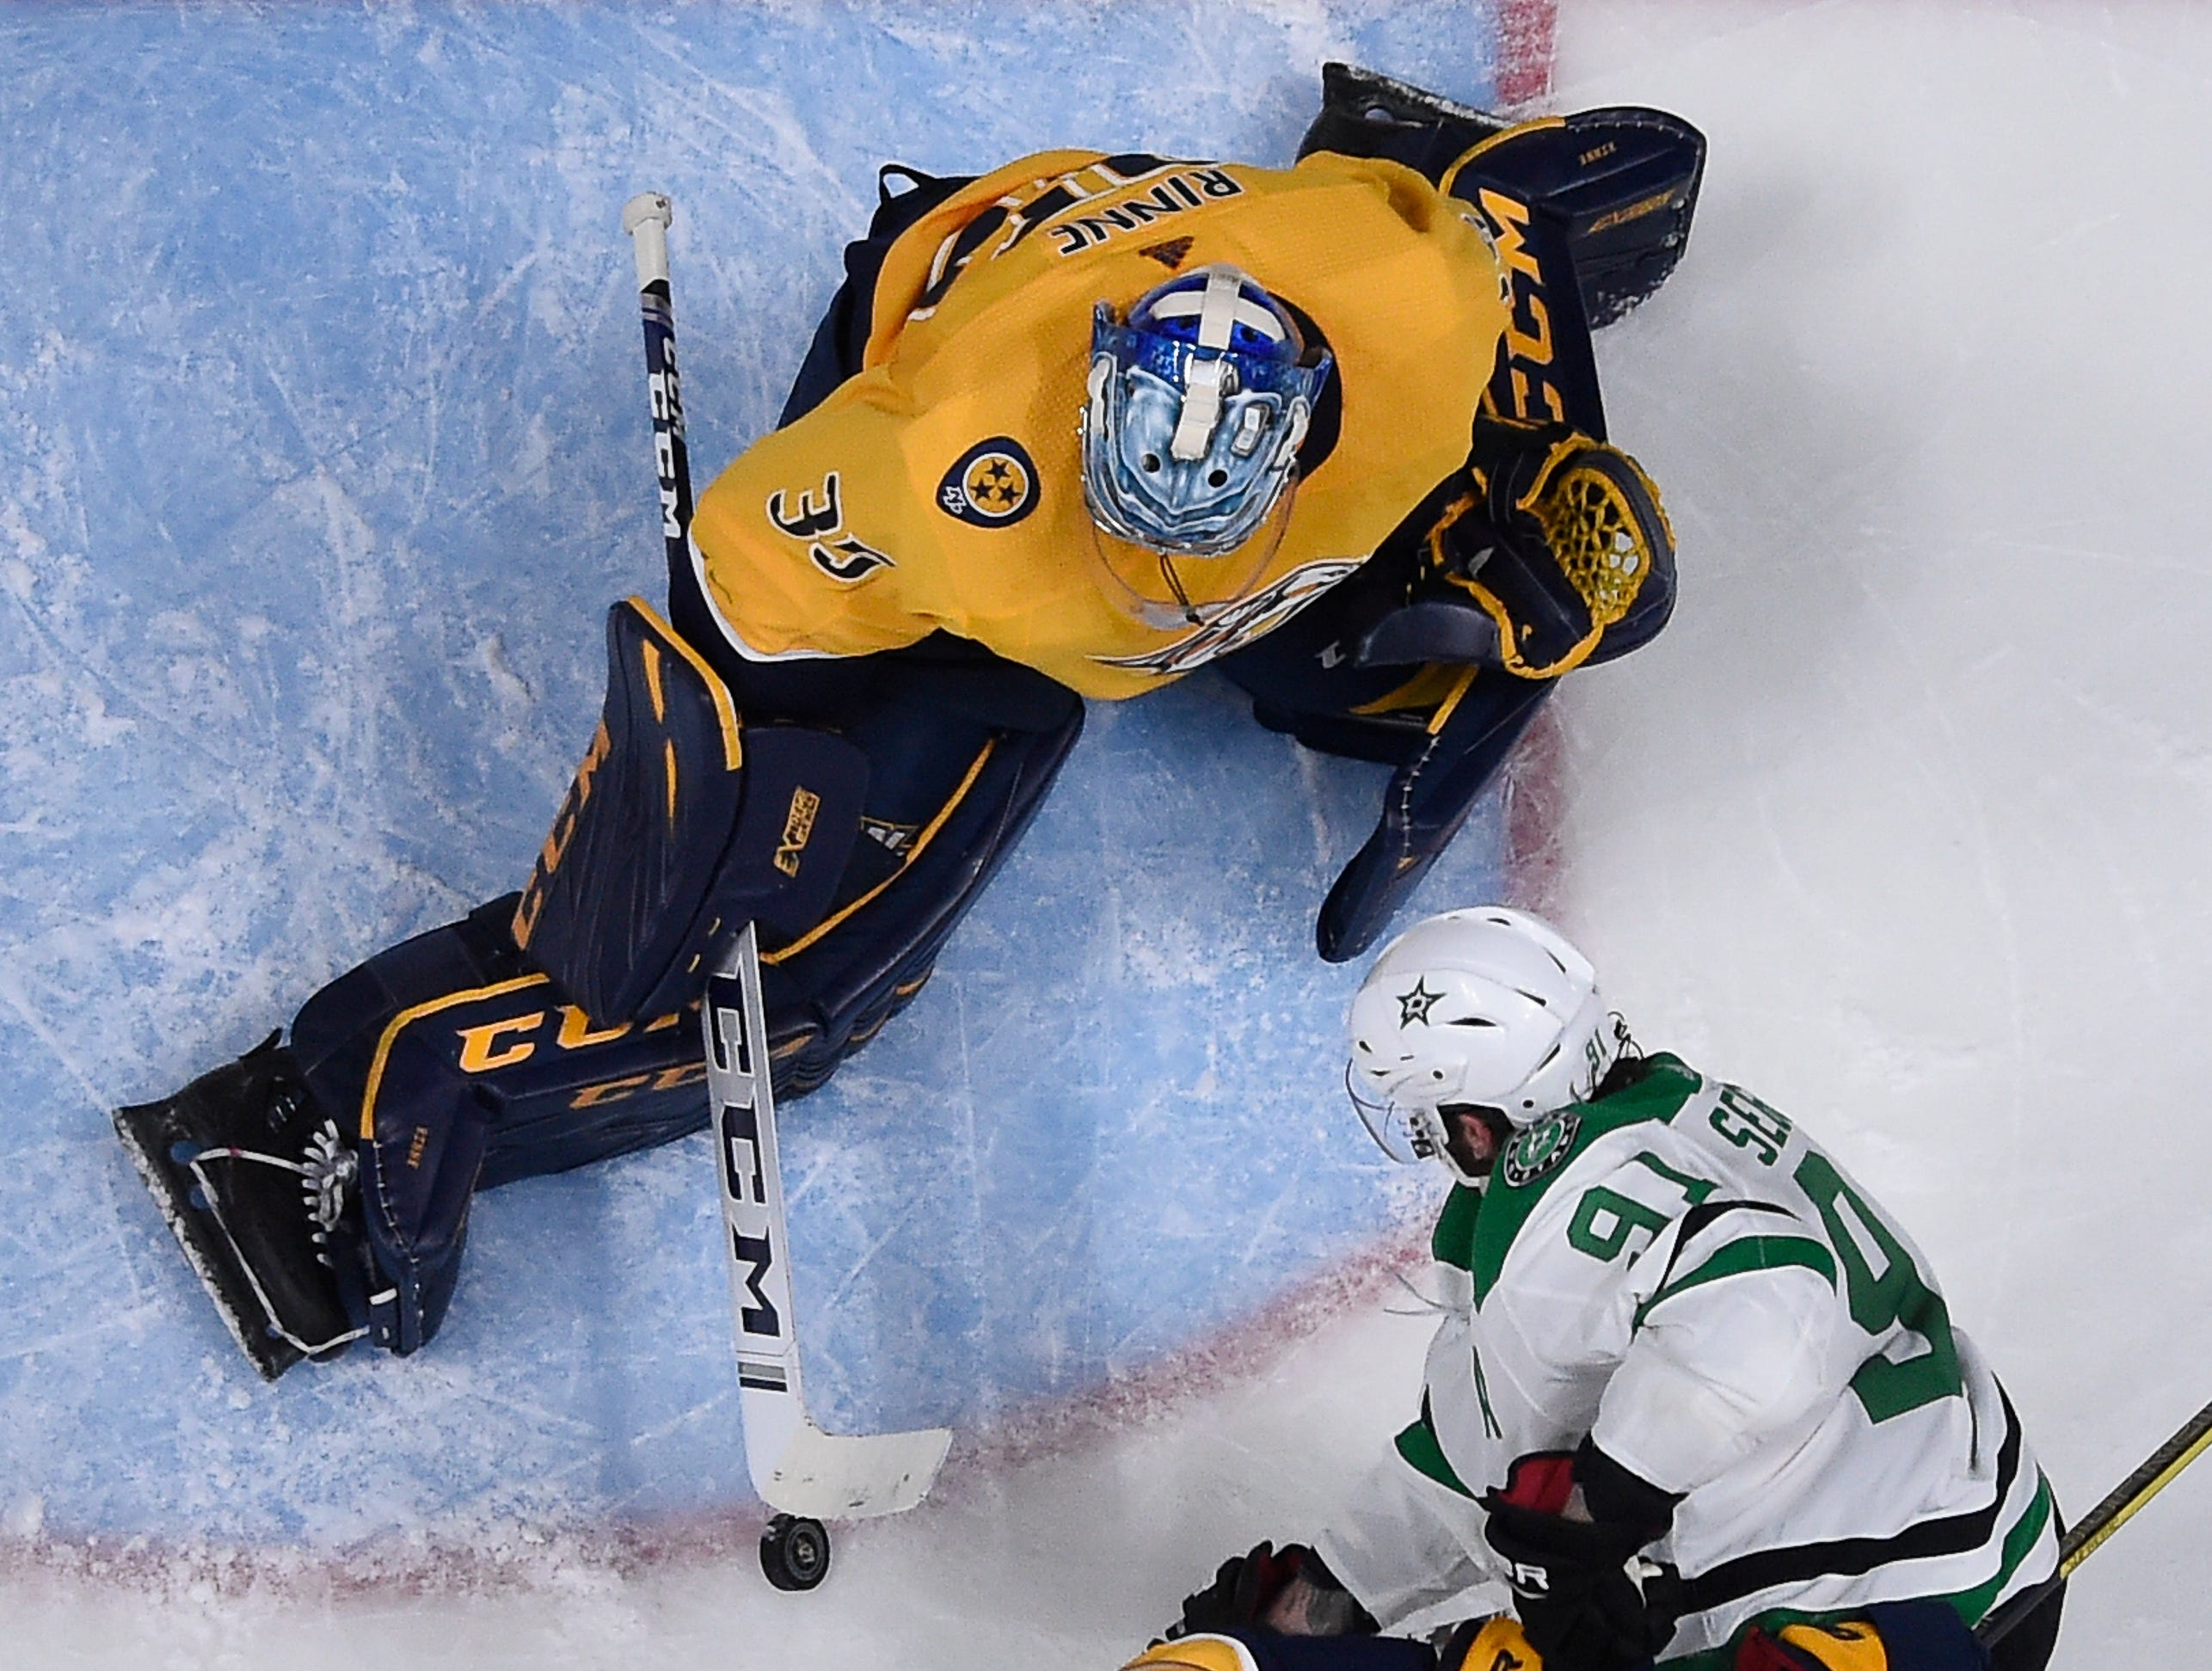 Nashville Predators goaltender Pekka Rinne (35) blocks a shot by Dallas Stars center Tyler Seguin (91) with help for defenseman Dan Hamhuis (5) during the second period of the divisional semifinal game at Bridgestone Arena Saturday, April 13, 2019 in Nashville, Tenn.